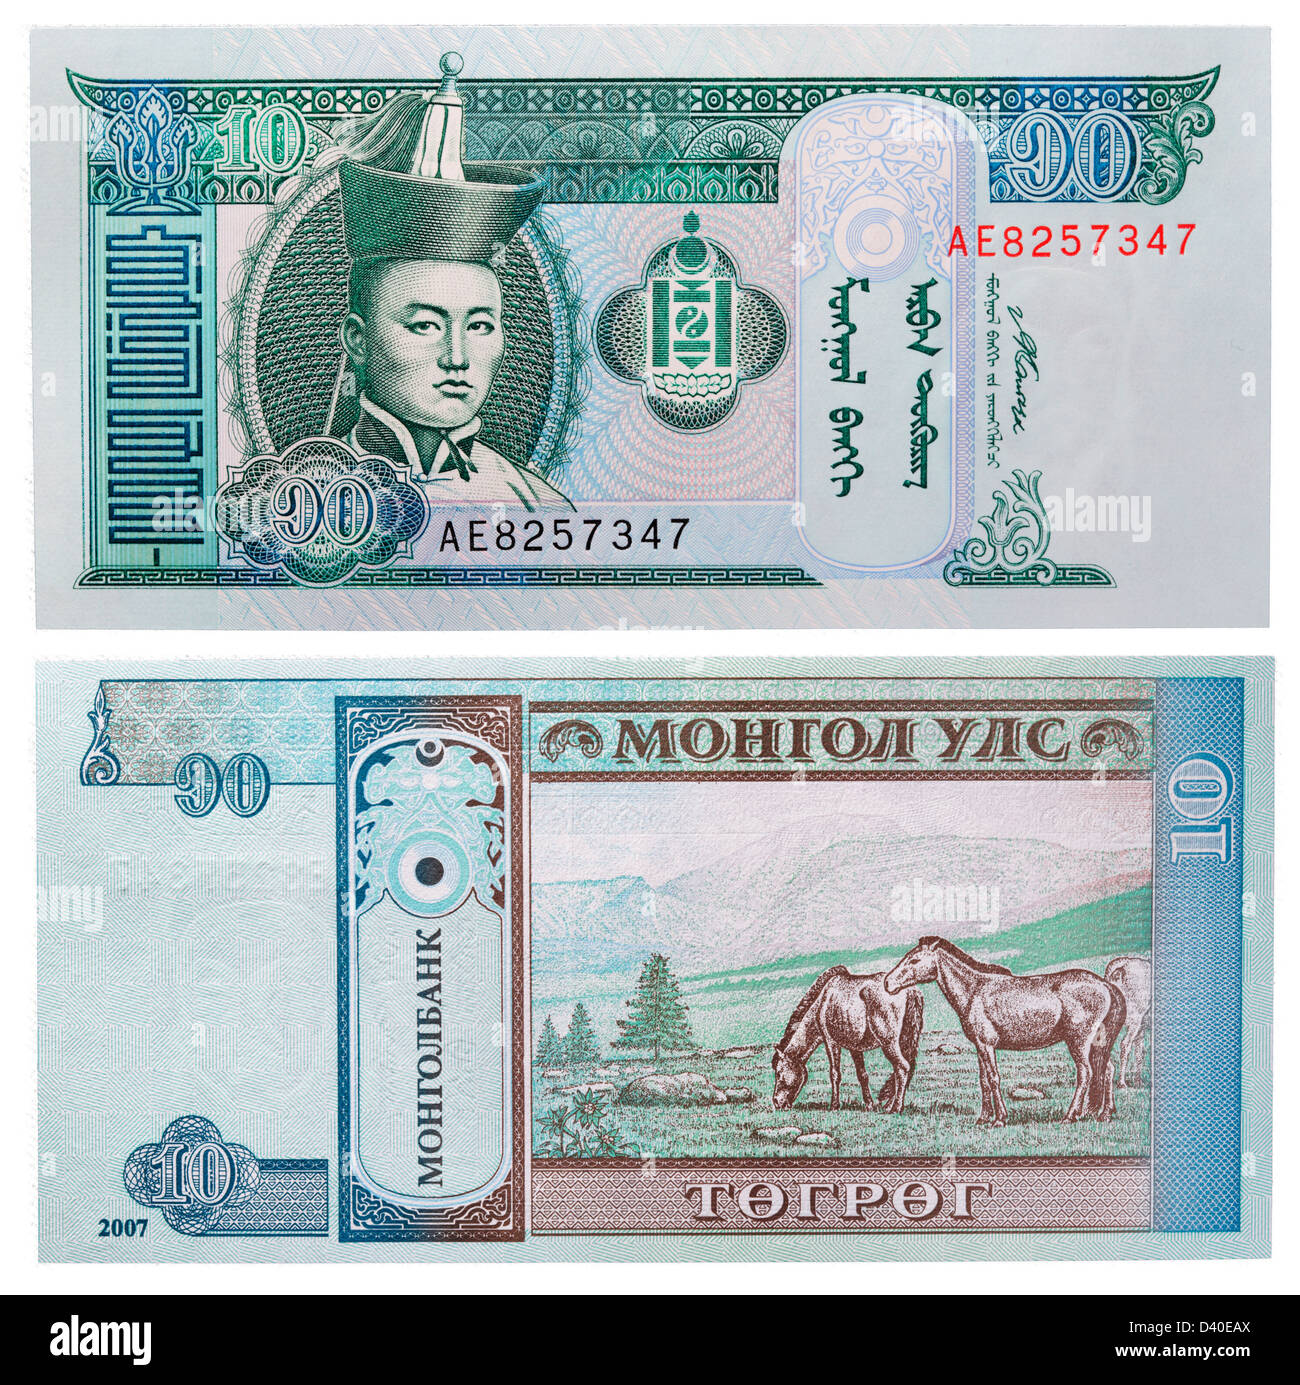 10 Tugrik, banknote, Sukhbaatar and horses in steppe, Mongolia, 2007 - Stock Image